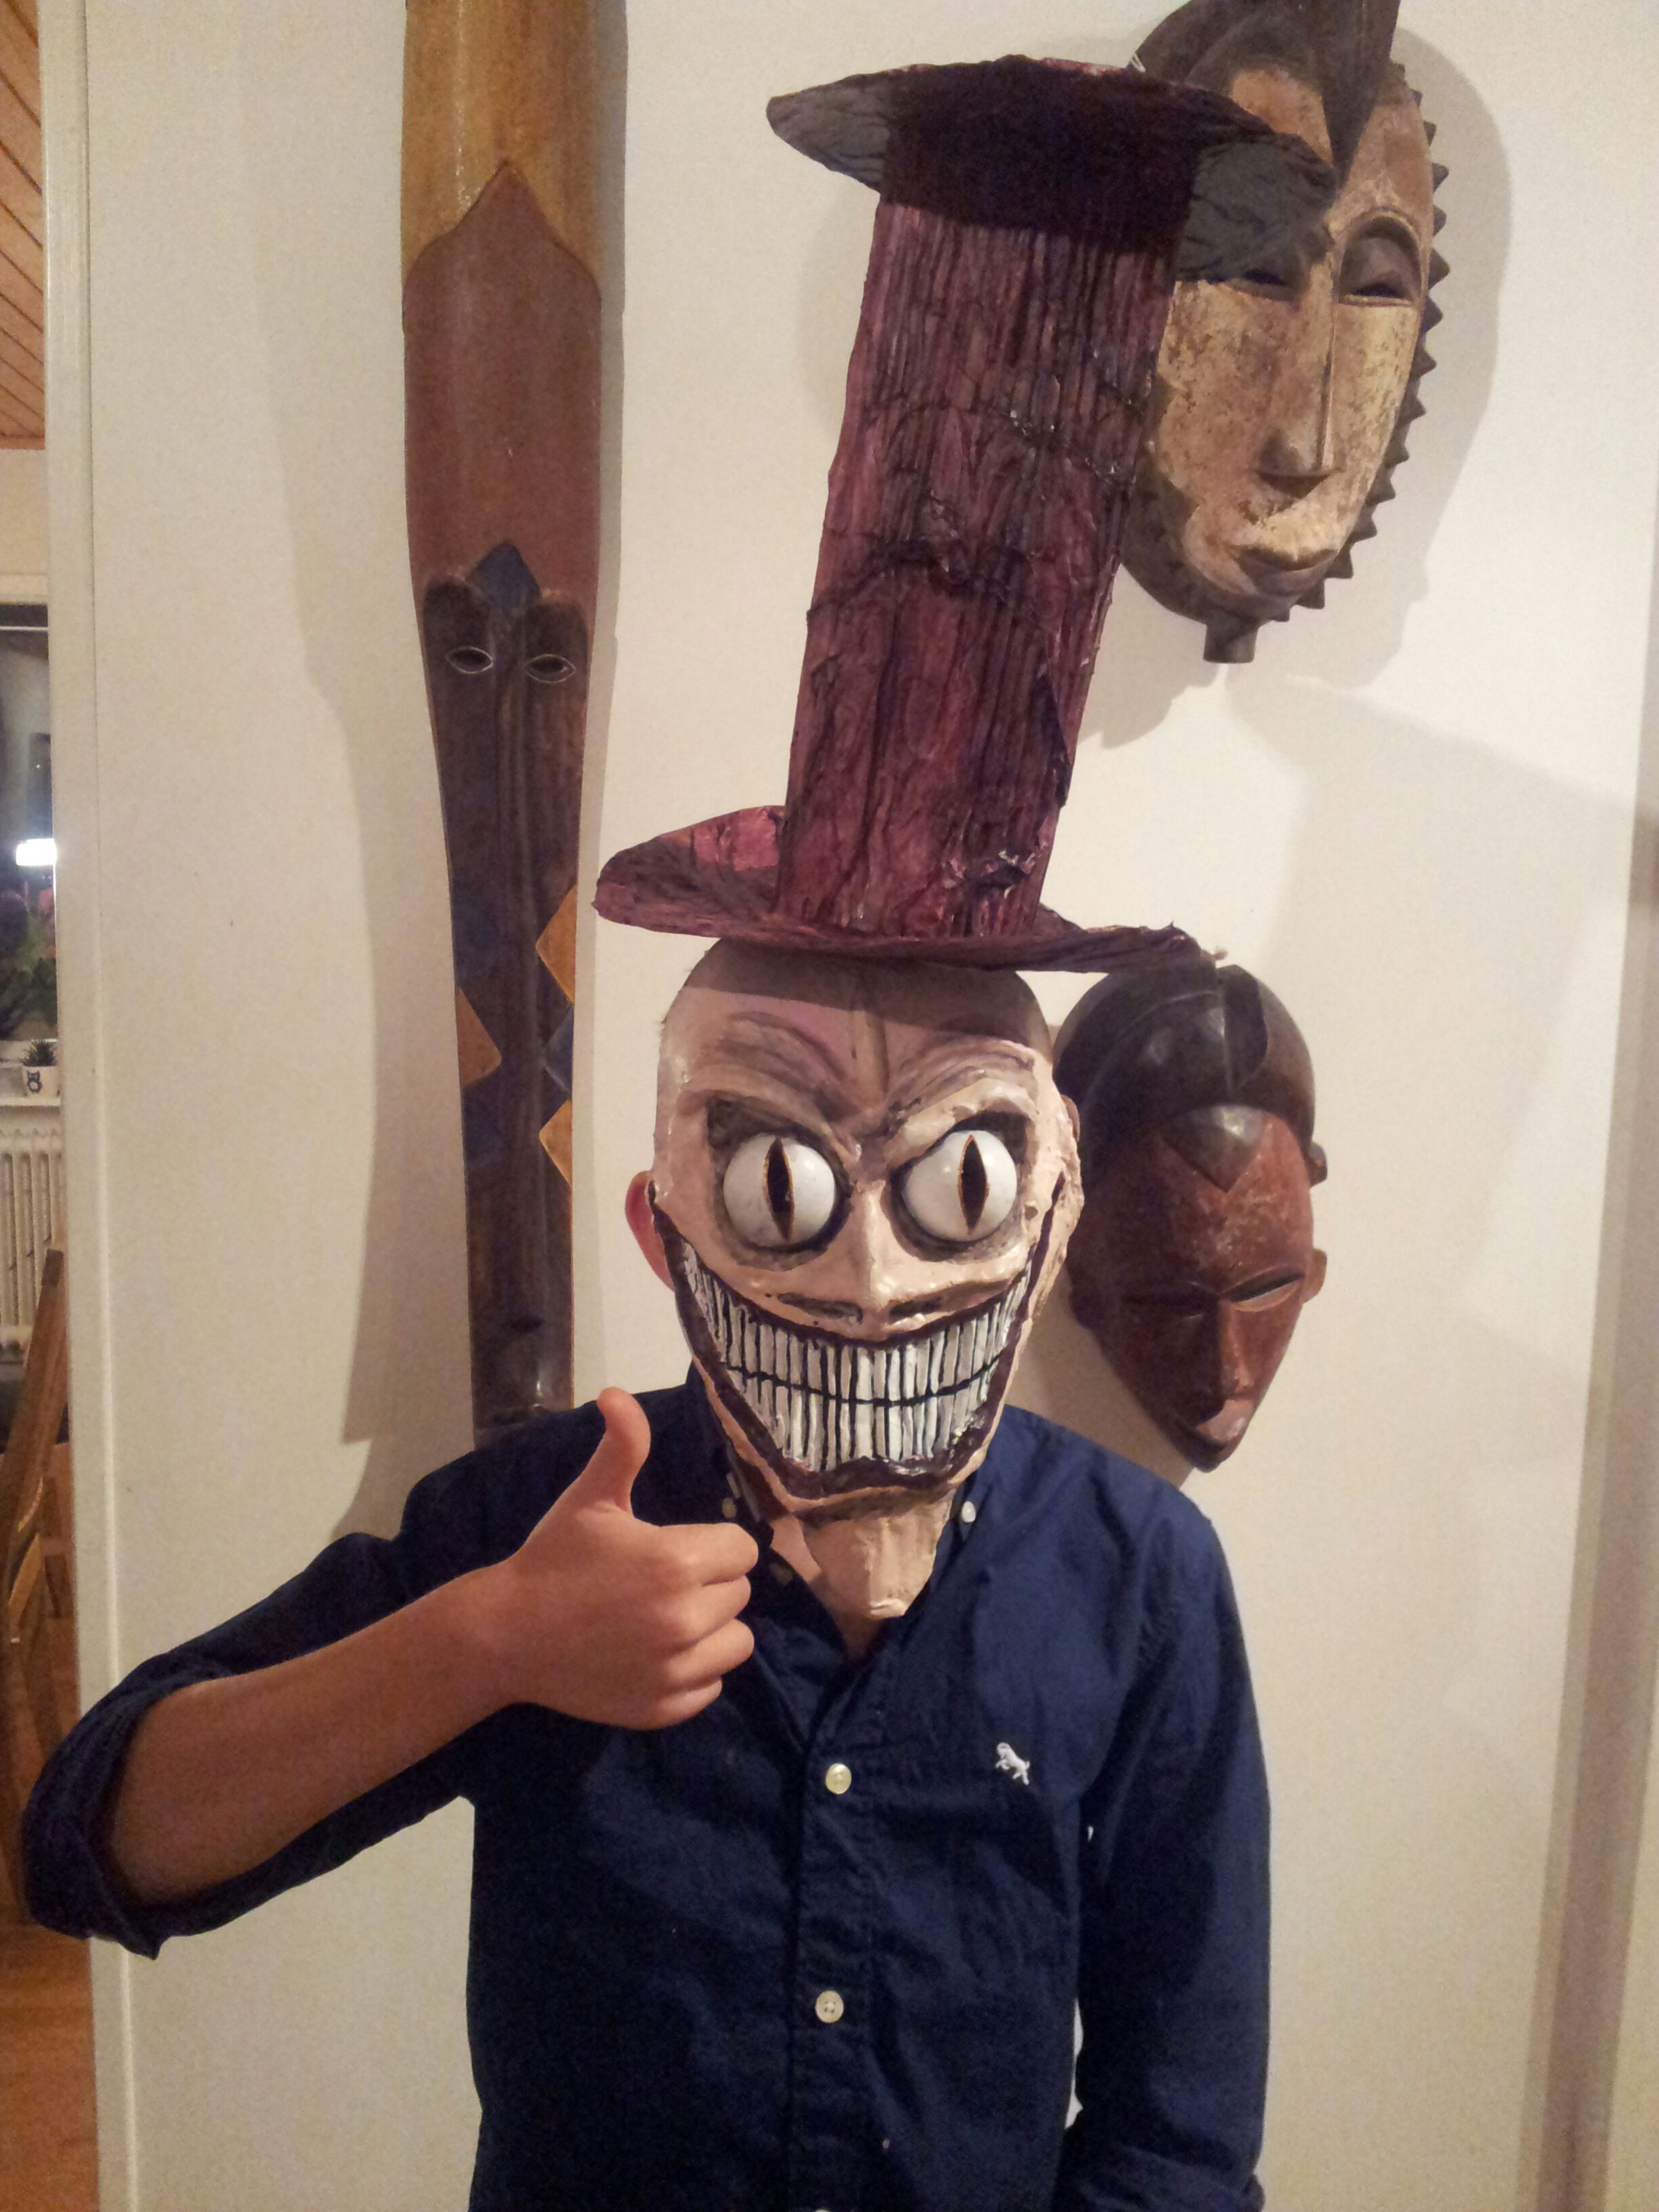 The Mask That Scares (Homage To The Scoochmaroo Scary Hat)